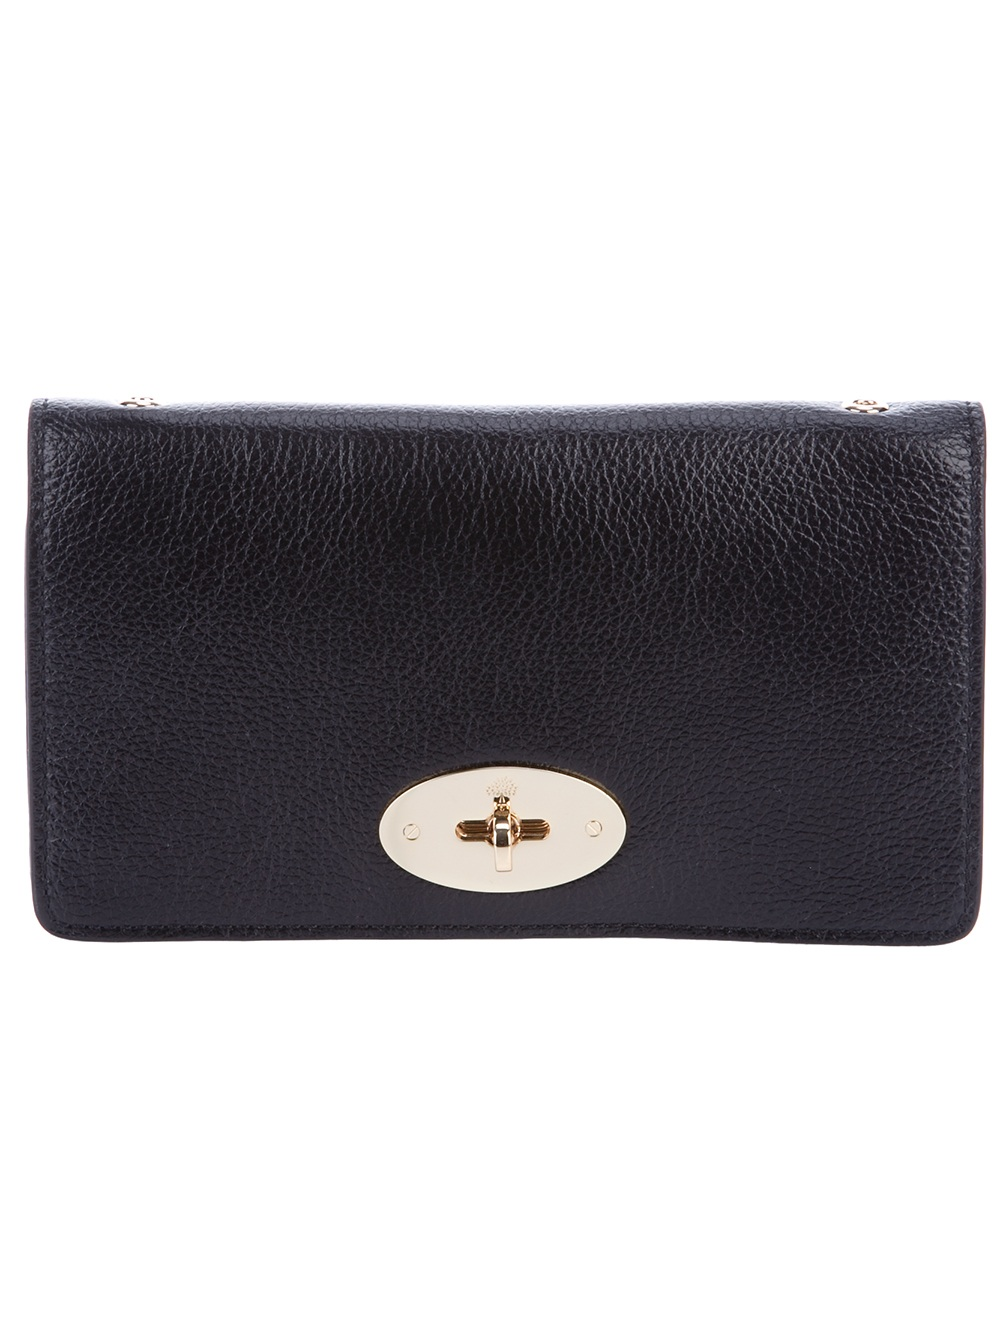 Kate Middleton Mulberry Clutch